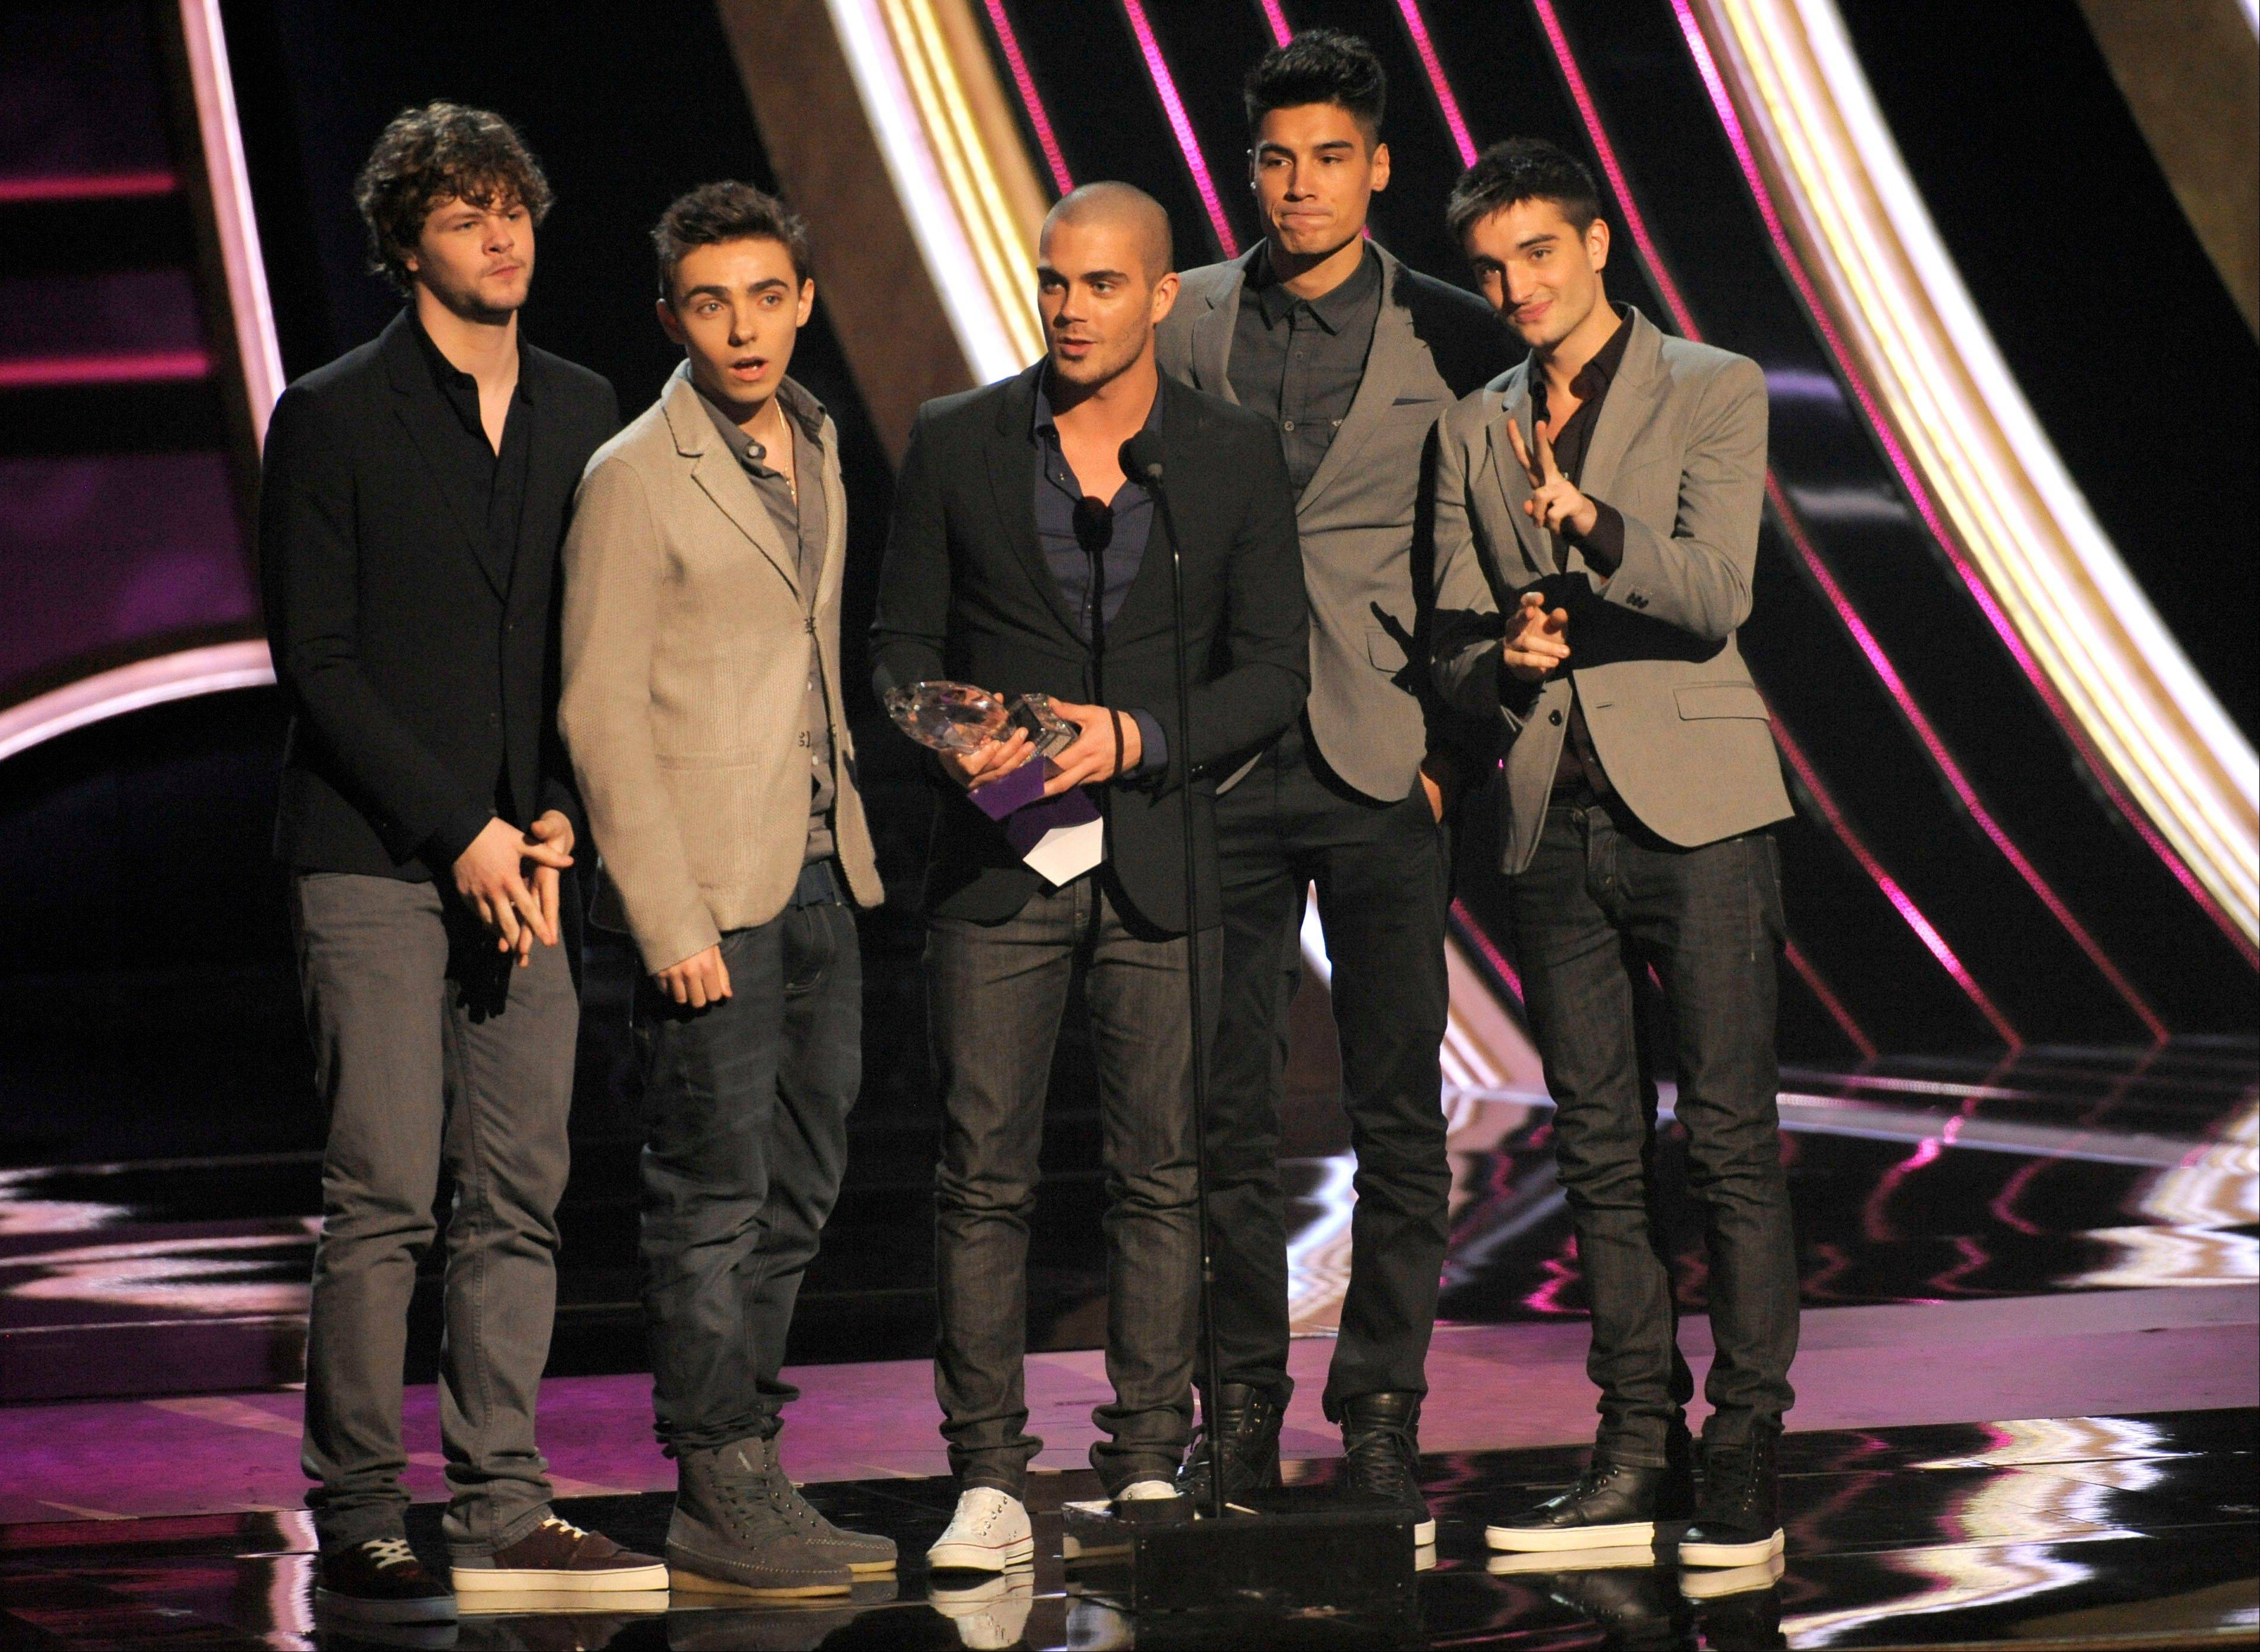 The Wanted accept the award for favorite Breakout artist at the People's Choice Awards at the Nokia Theatre on Wednesday Jan. 9, 2013, in Los Angeles.